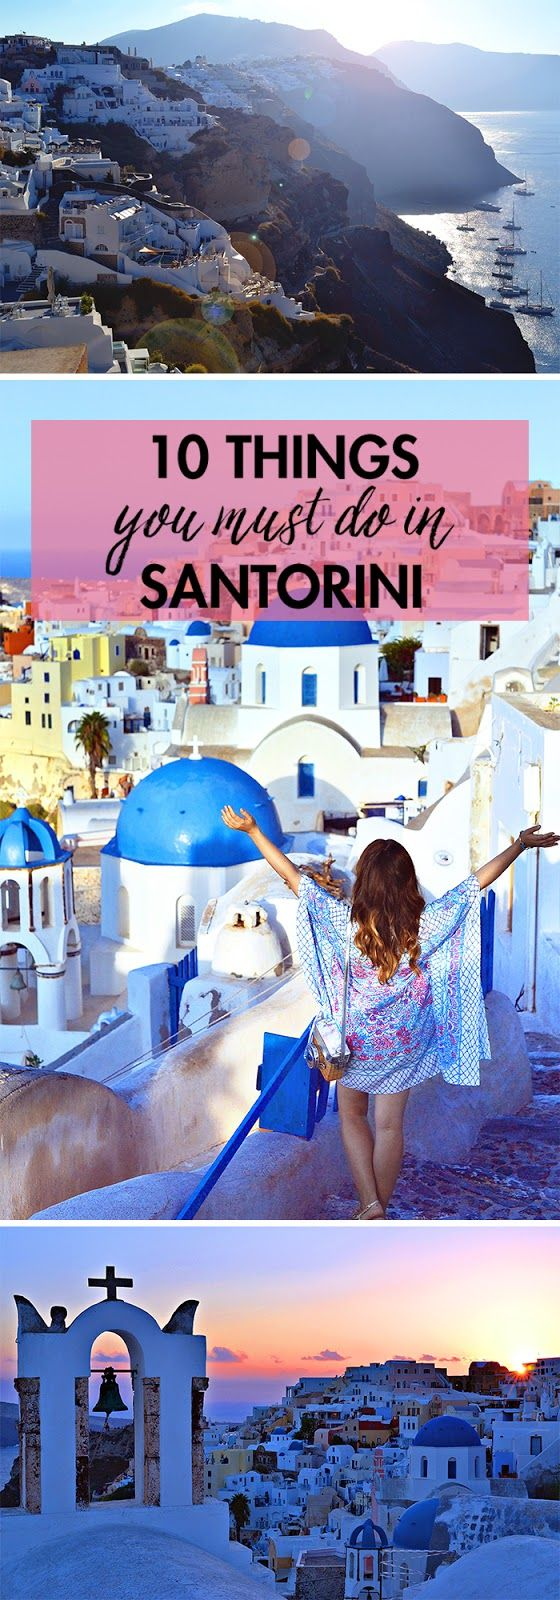 10 Things You Must Do in Santorini - History In High Heels